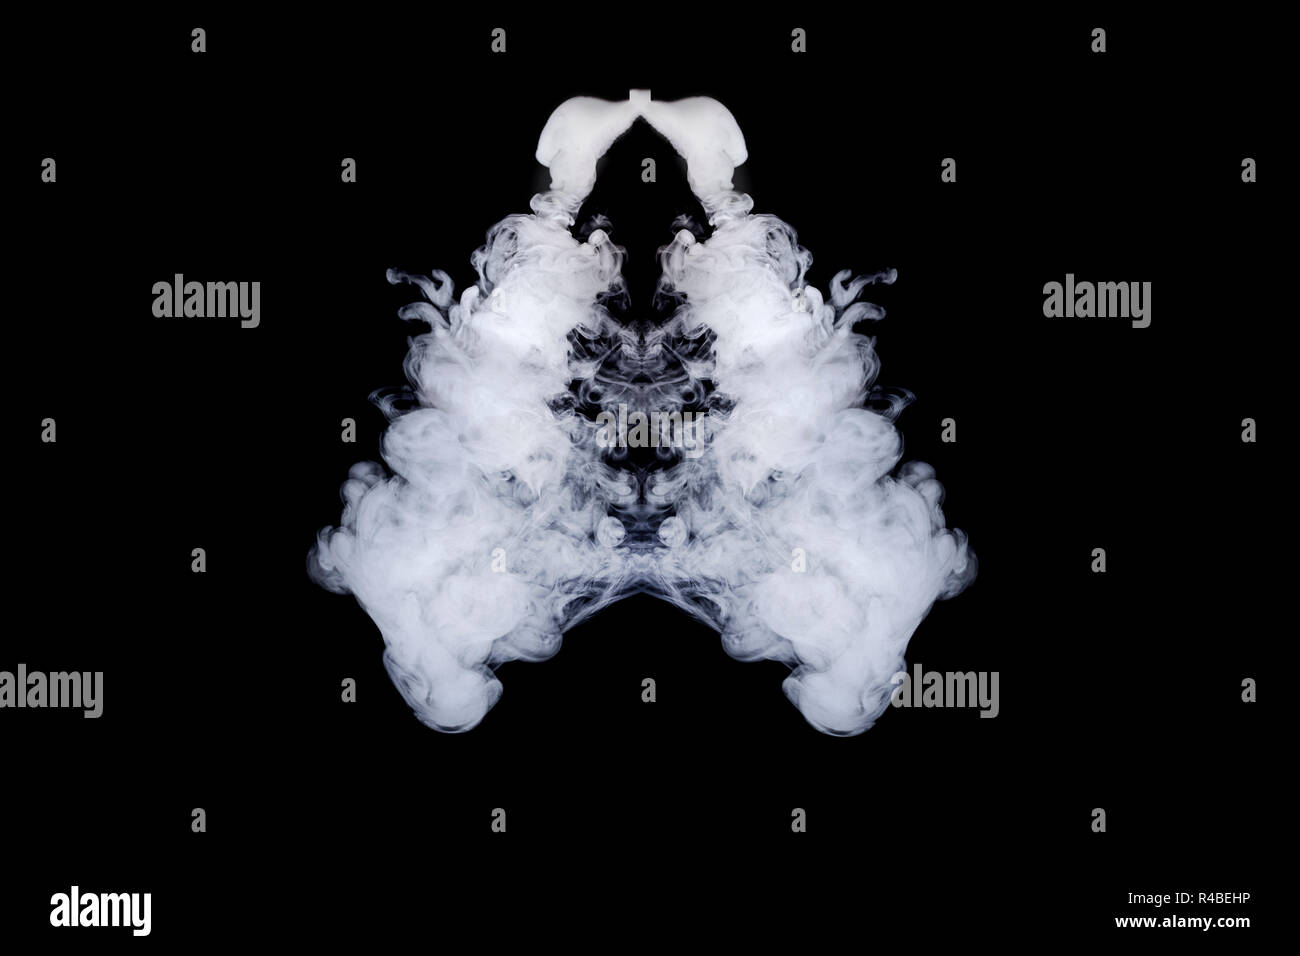 lungs of smoke on an isolated black background - Stock Image